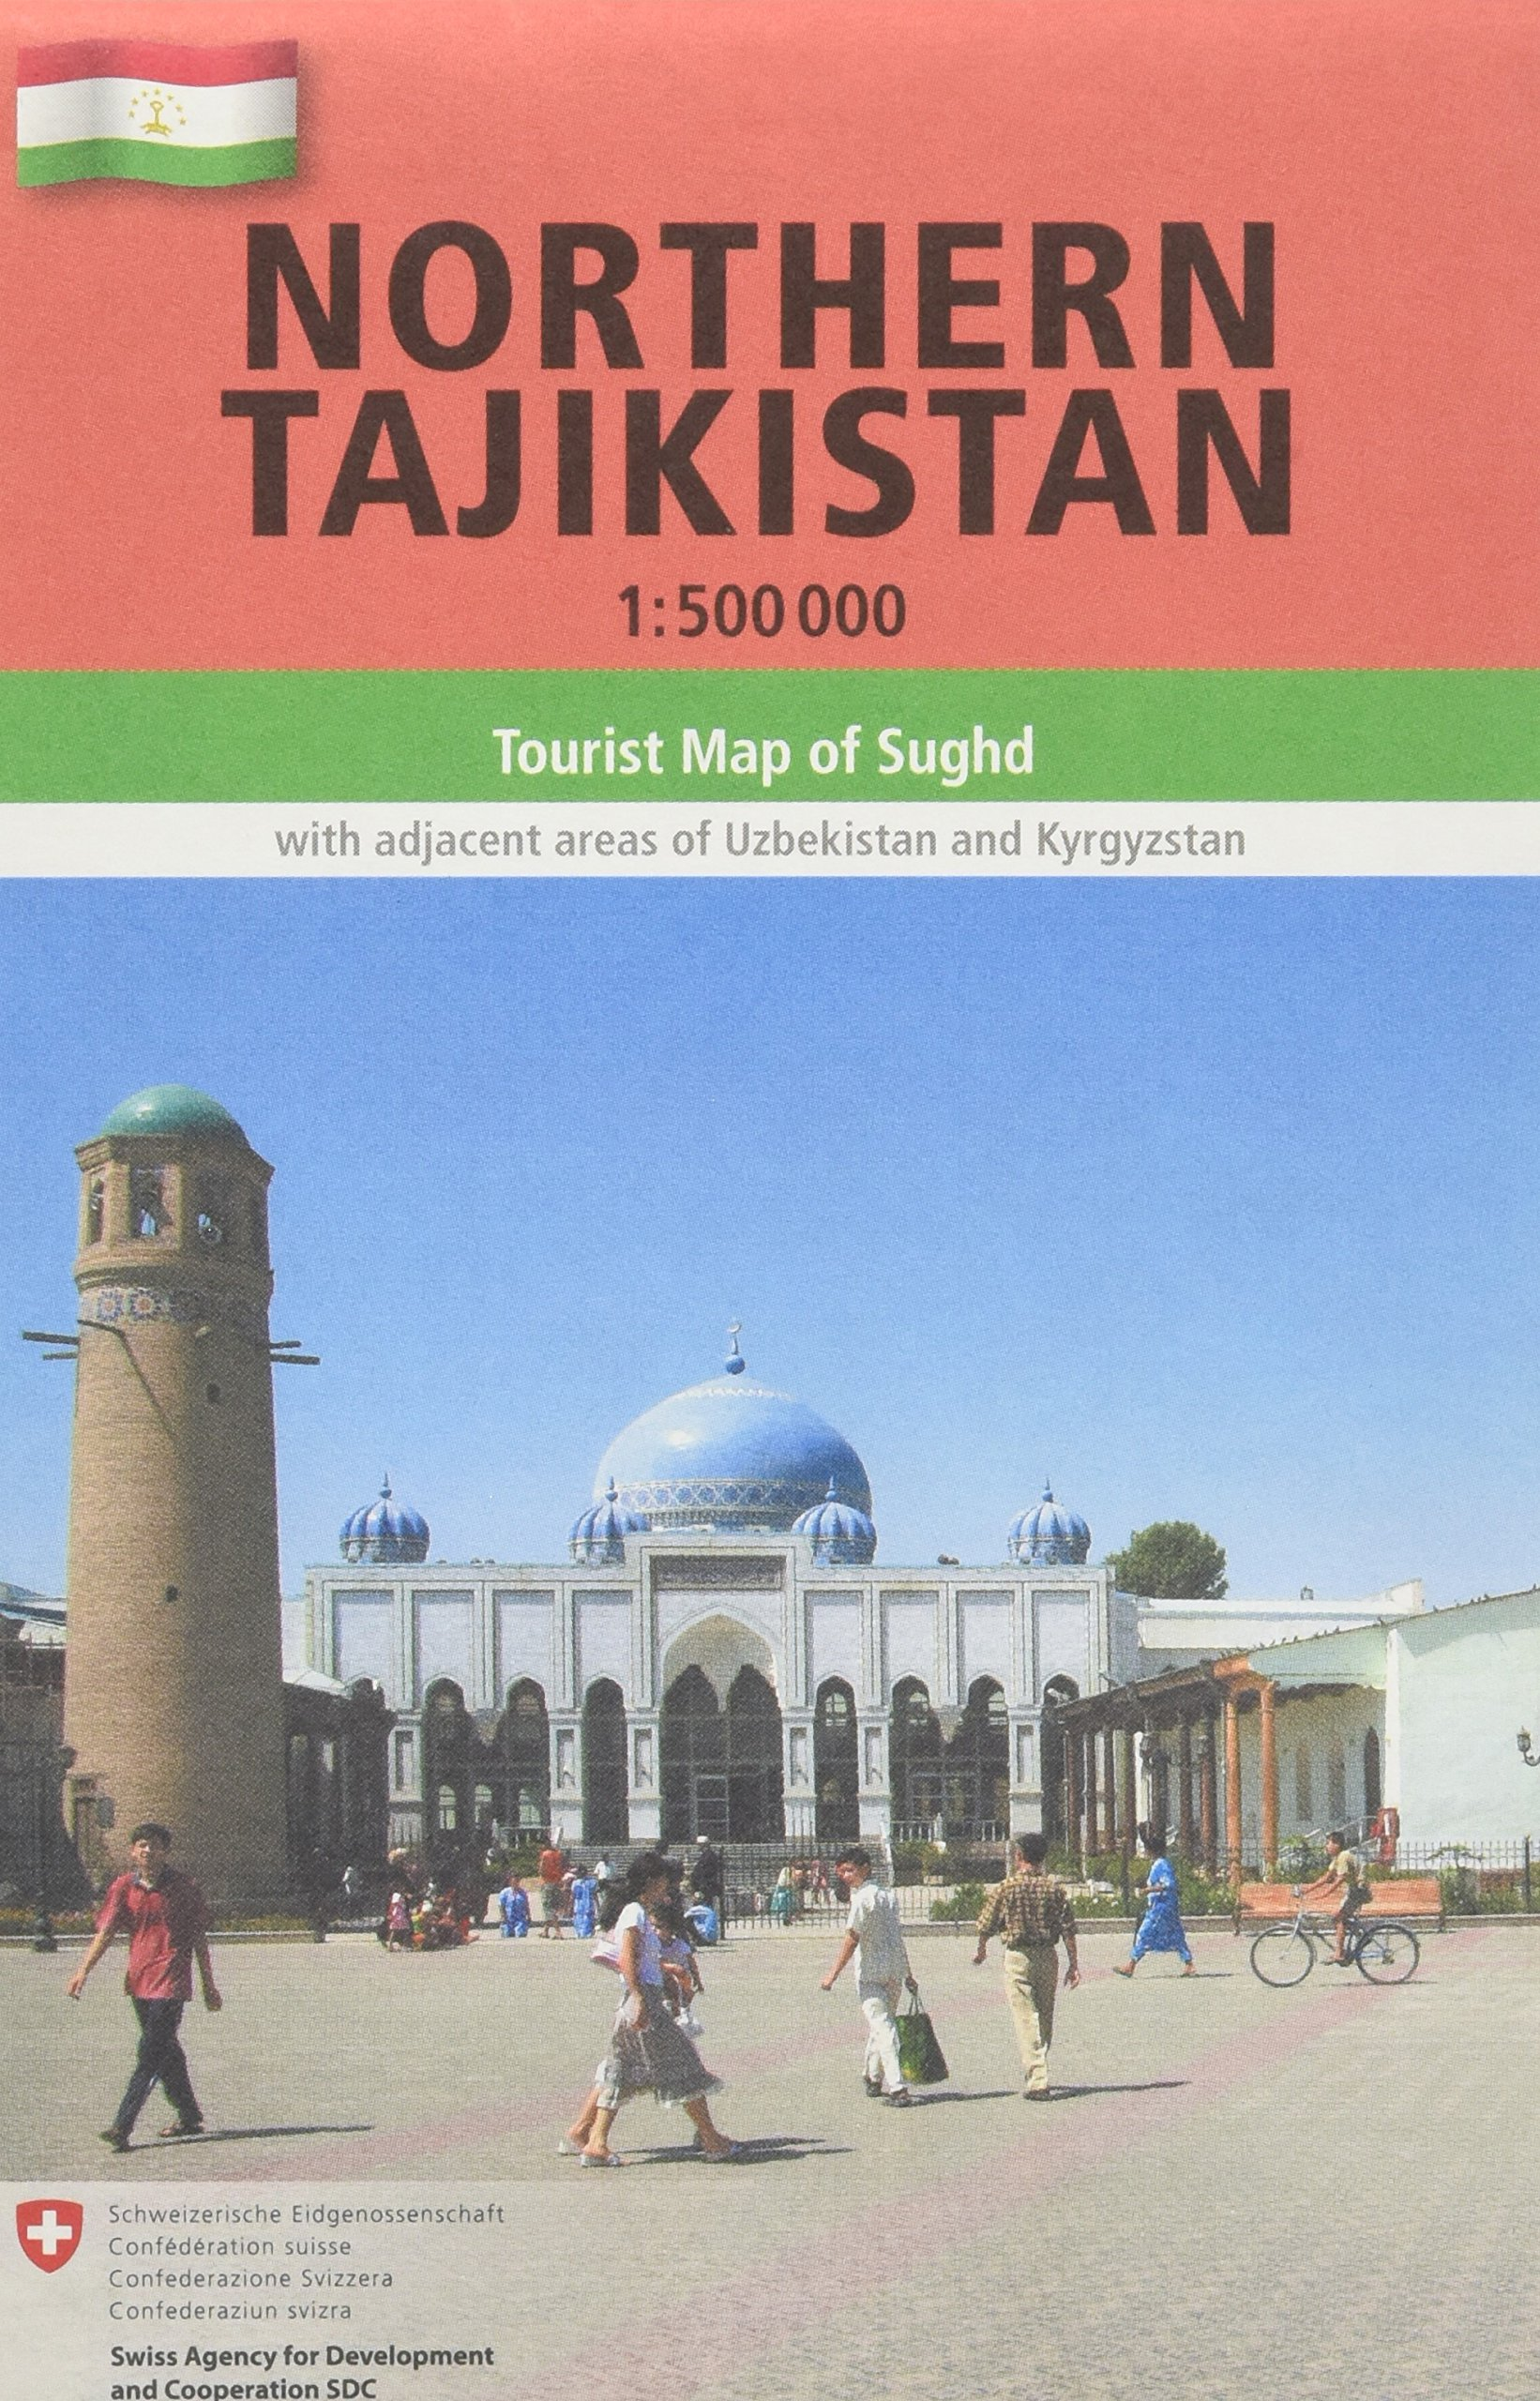 Northern Tajikistan: 1:500'000, Tourist Map of Sughd with adjacent areas of Uzbekistan and Kyrgyzstan (Gecko Maps)